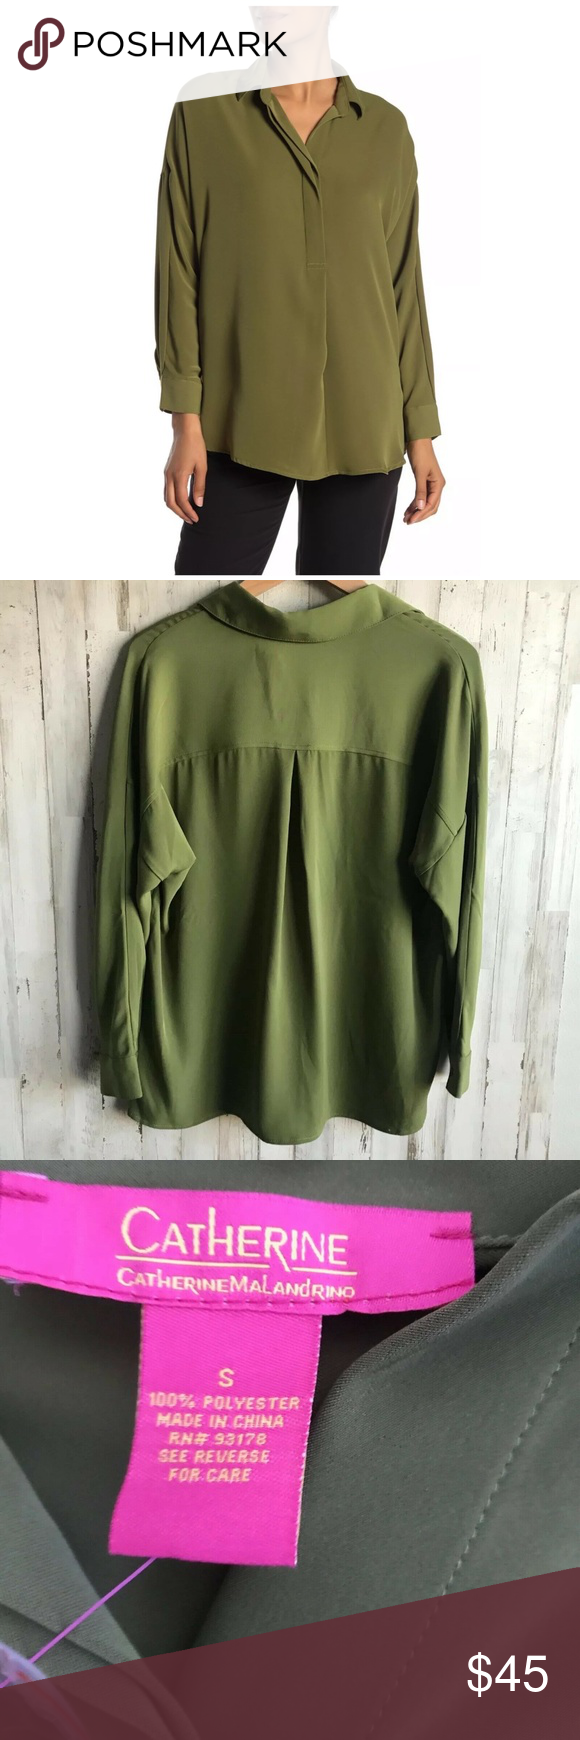 """Catherine Malandrino  Woven Top Long Sleeve, Half Button, Collared  Color: Wild Palm  Size: Small  Approximate Measurements: Pit to pit: 24"""" Length: 29""""  100% Polyester  New with tags Excellent condition  0289 Catherine Malandrino Tops Button Down Shirts"""